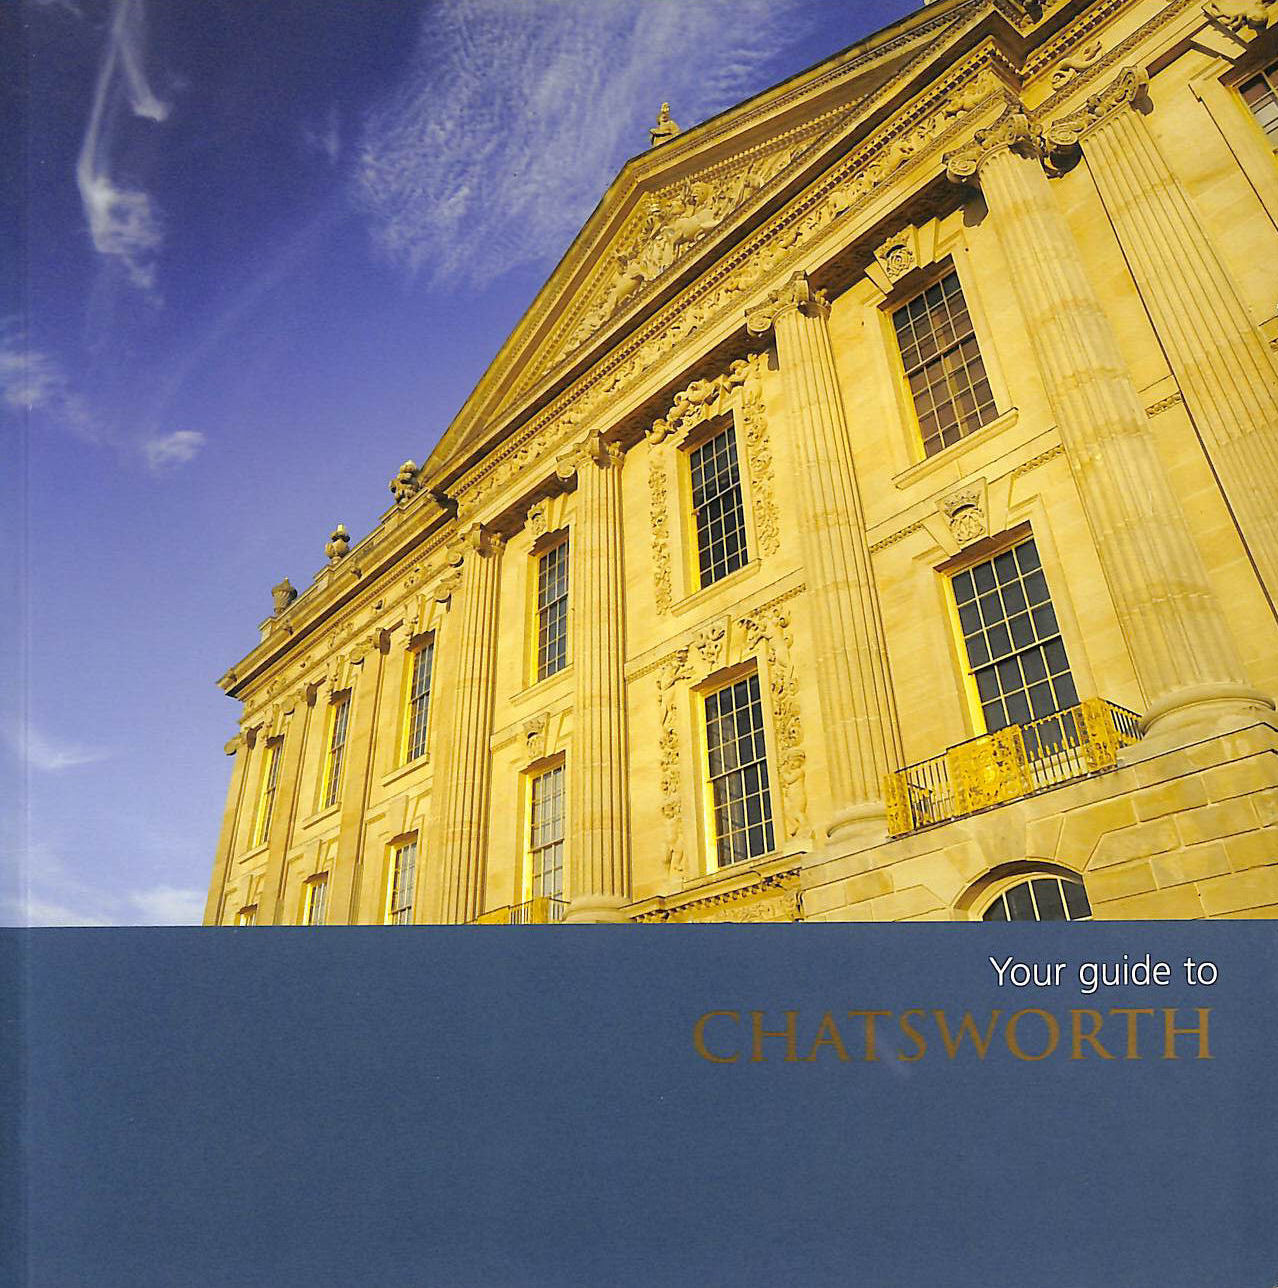 Image for Your Guide to Chatsworth